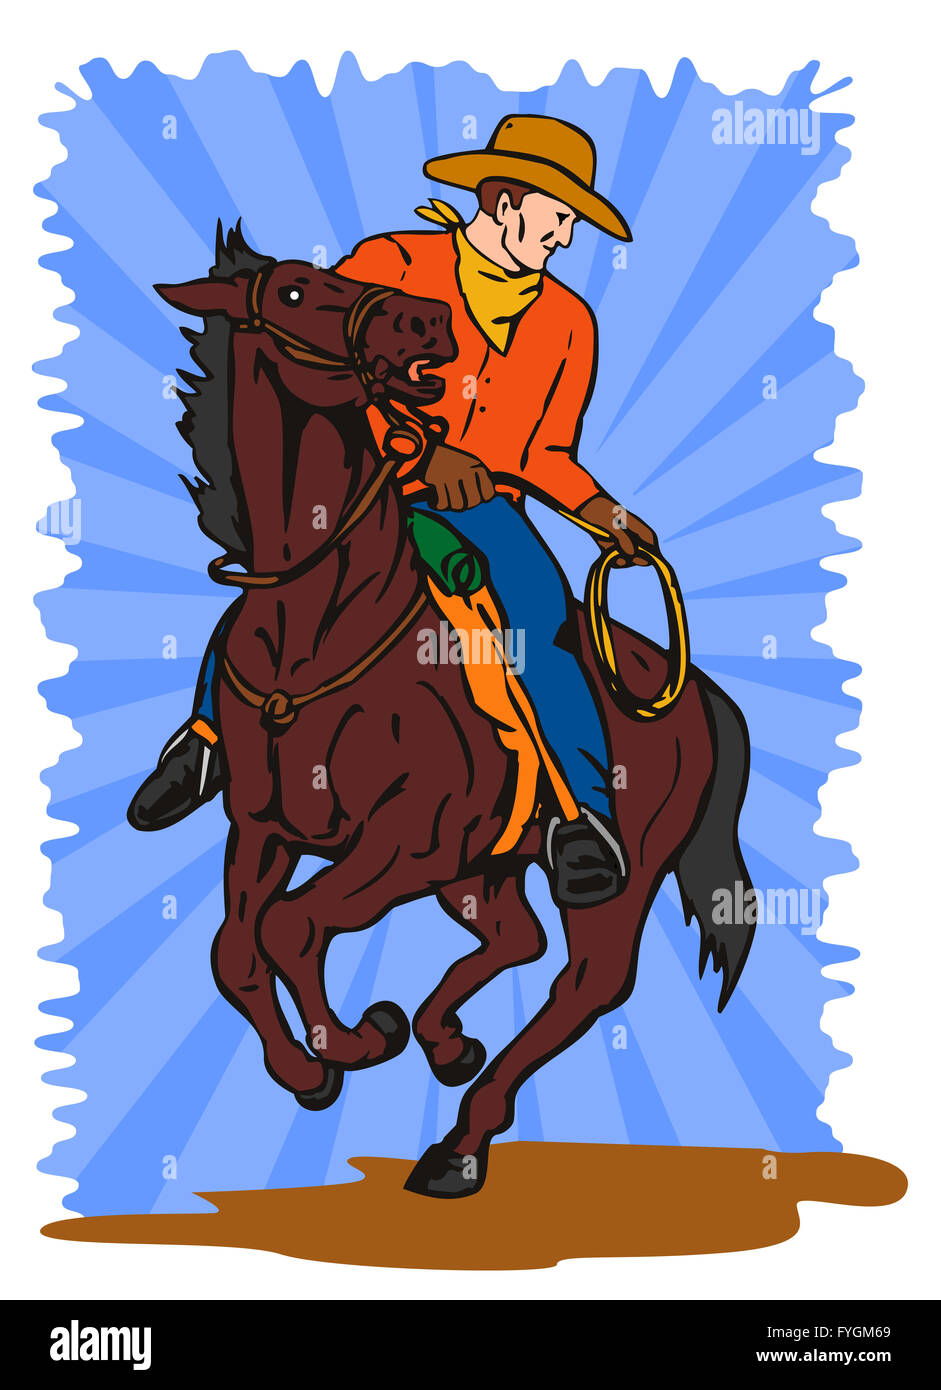 Cowboy on Horse with Lasso - Stock Image